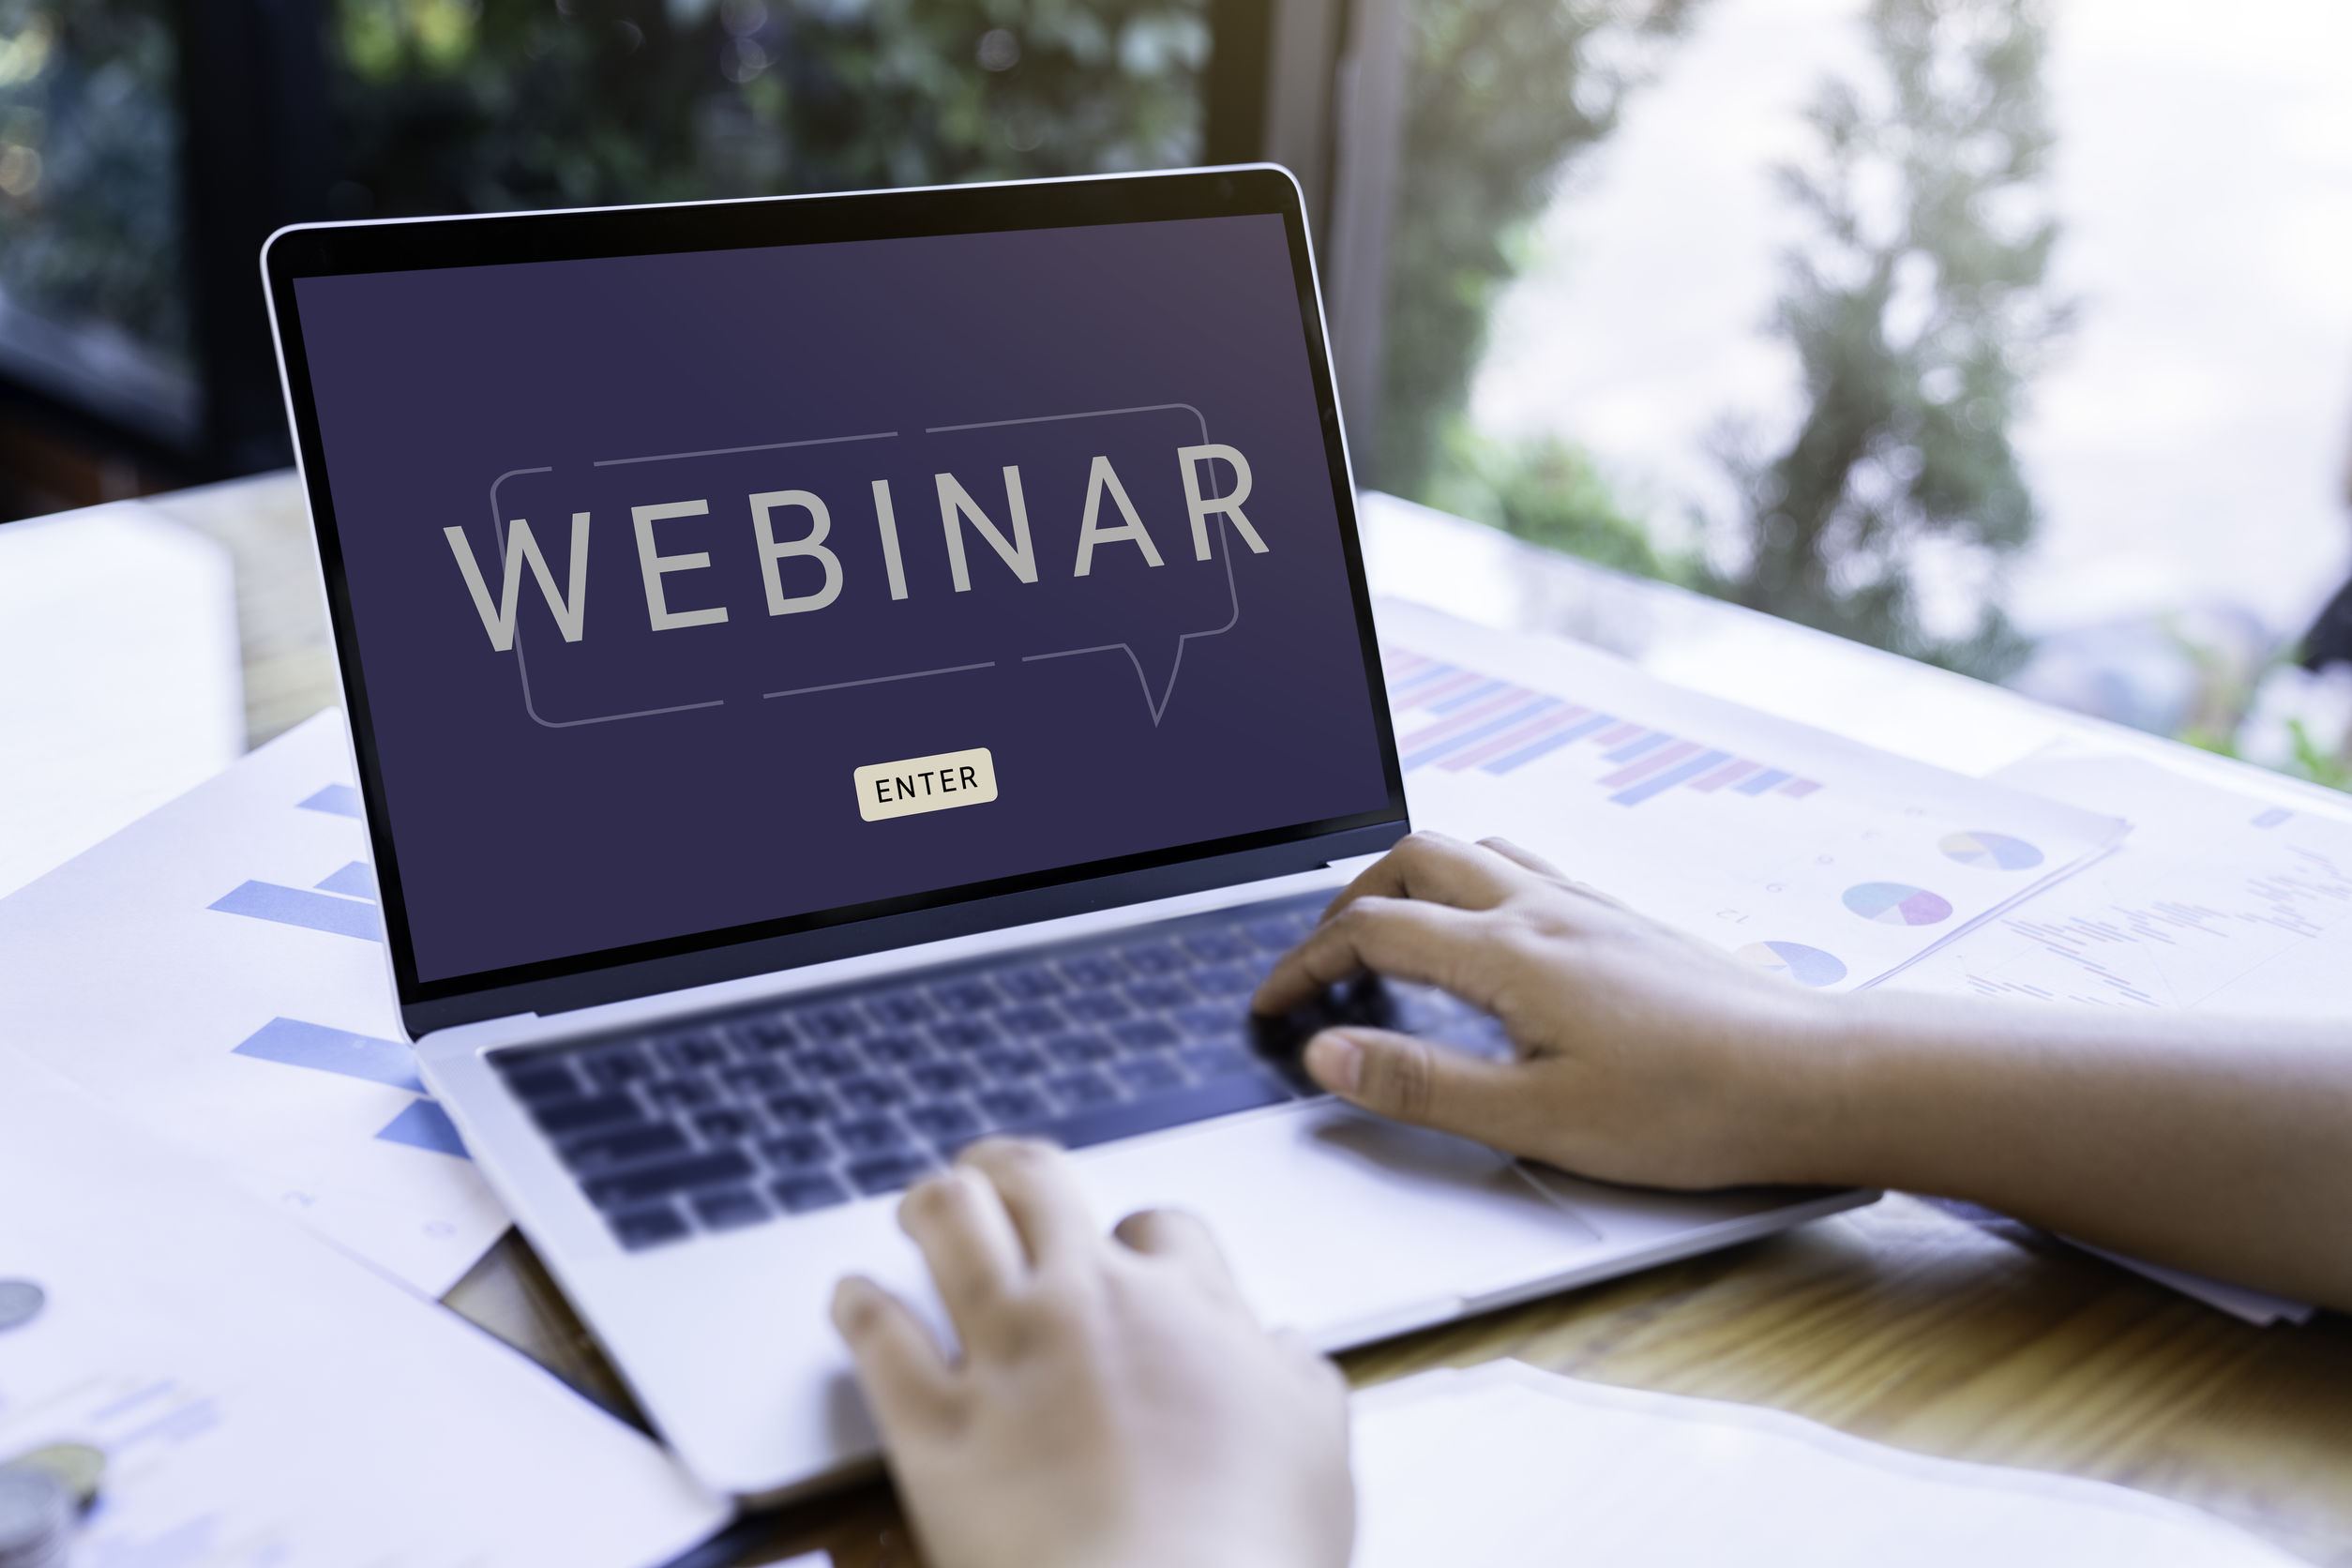 Take Your Business to the Next Level with Our May Webinars